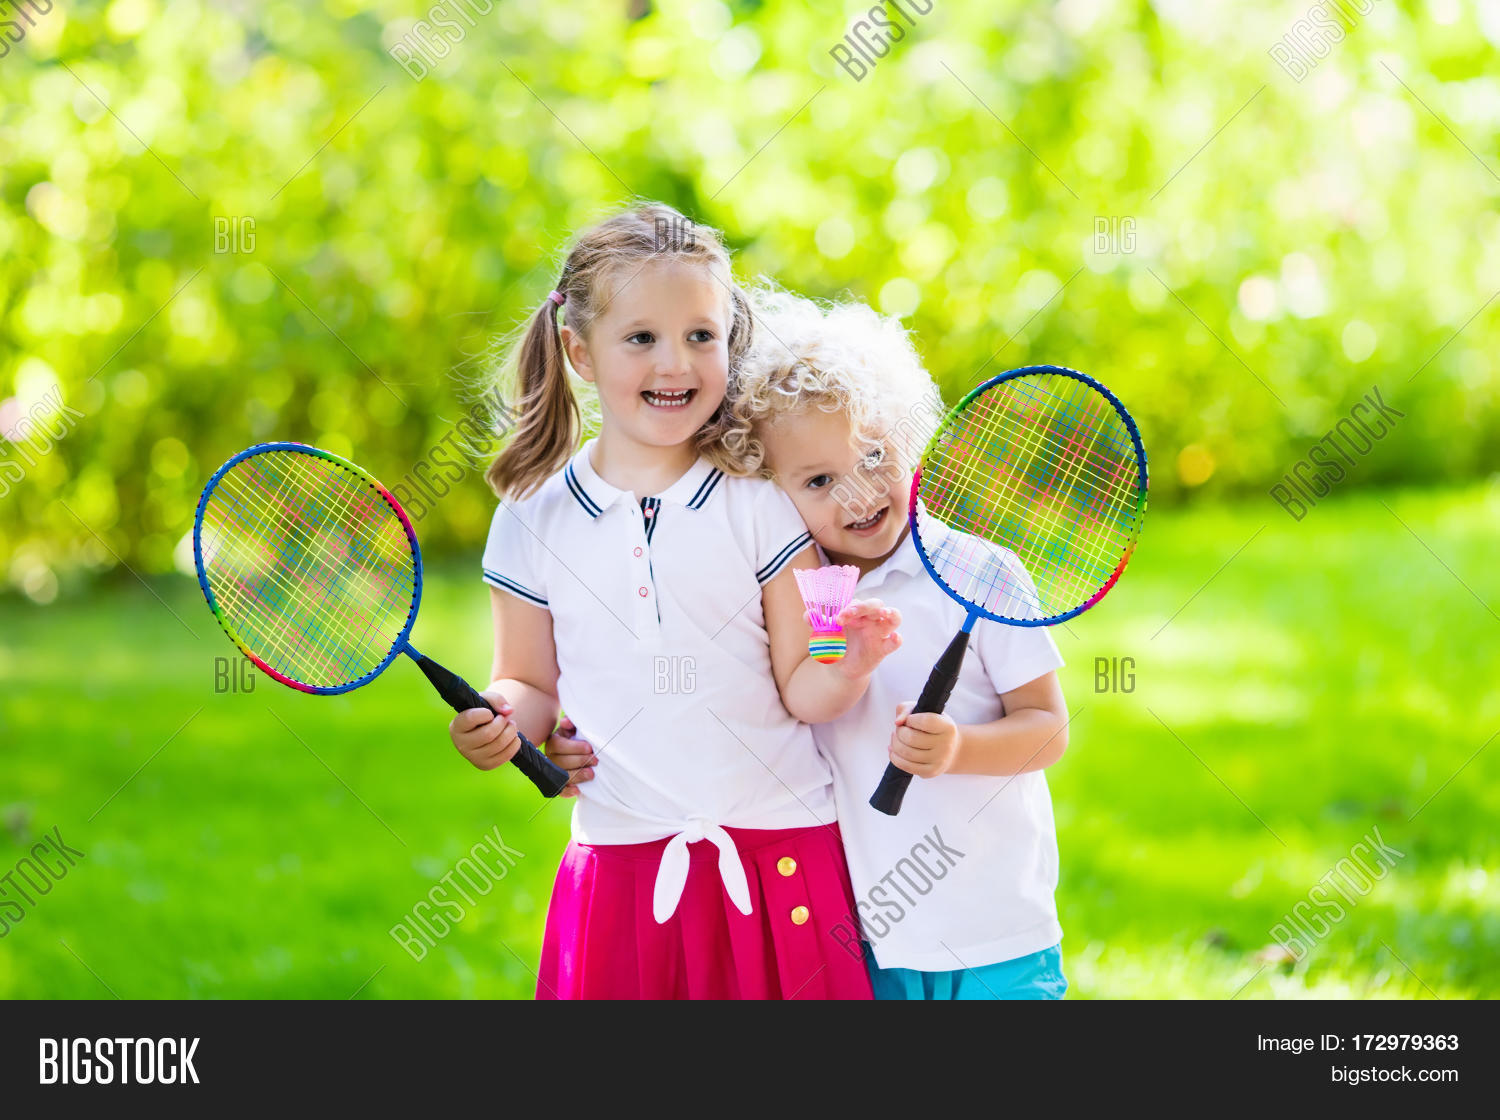 Kids Play Badminton Image & Photo (Free Trial) | Bigstock